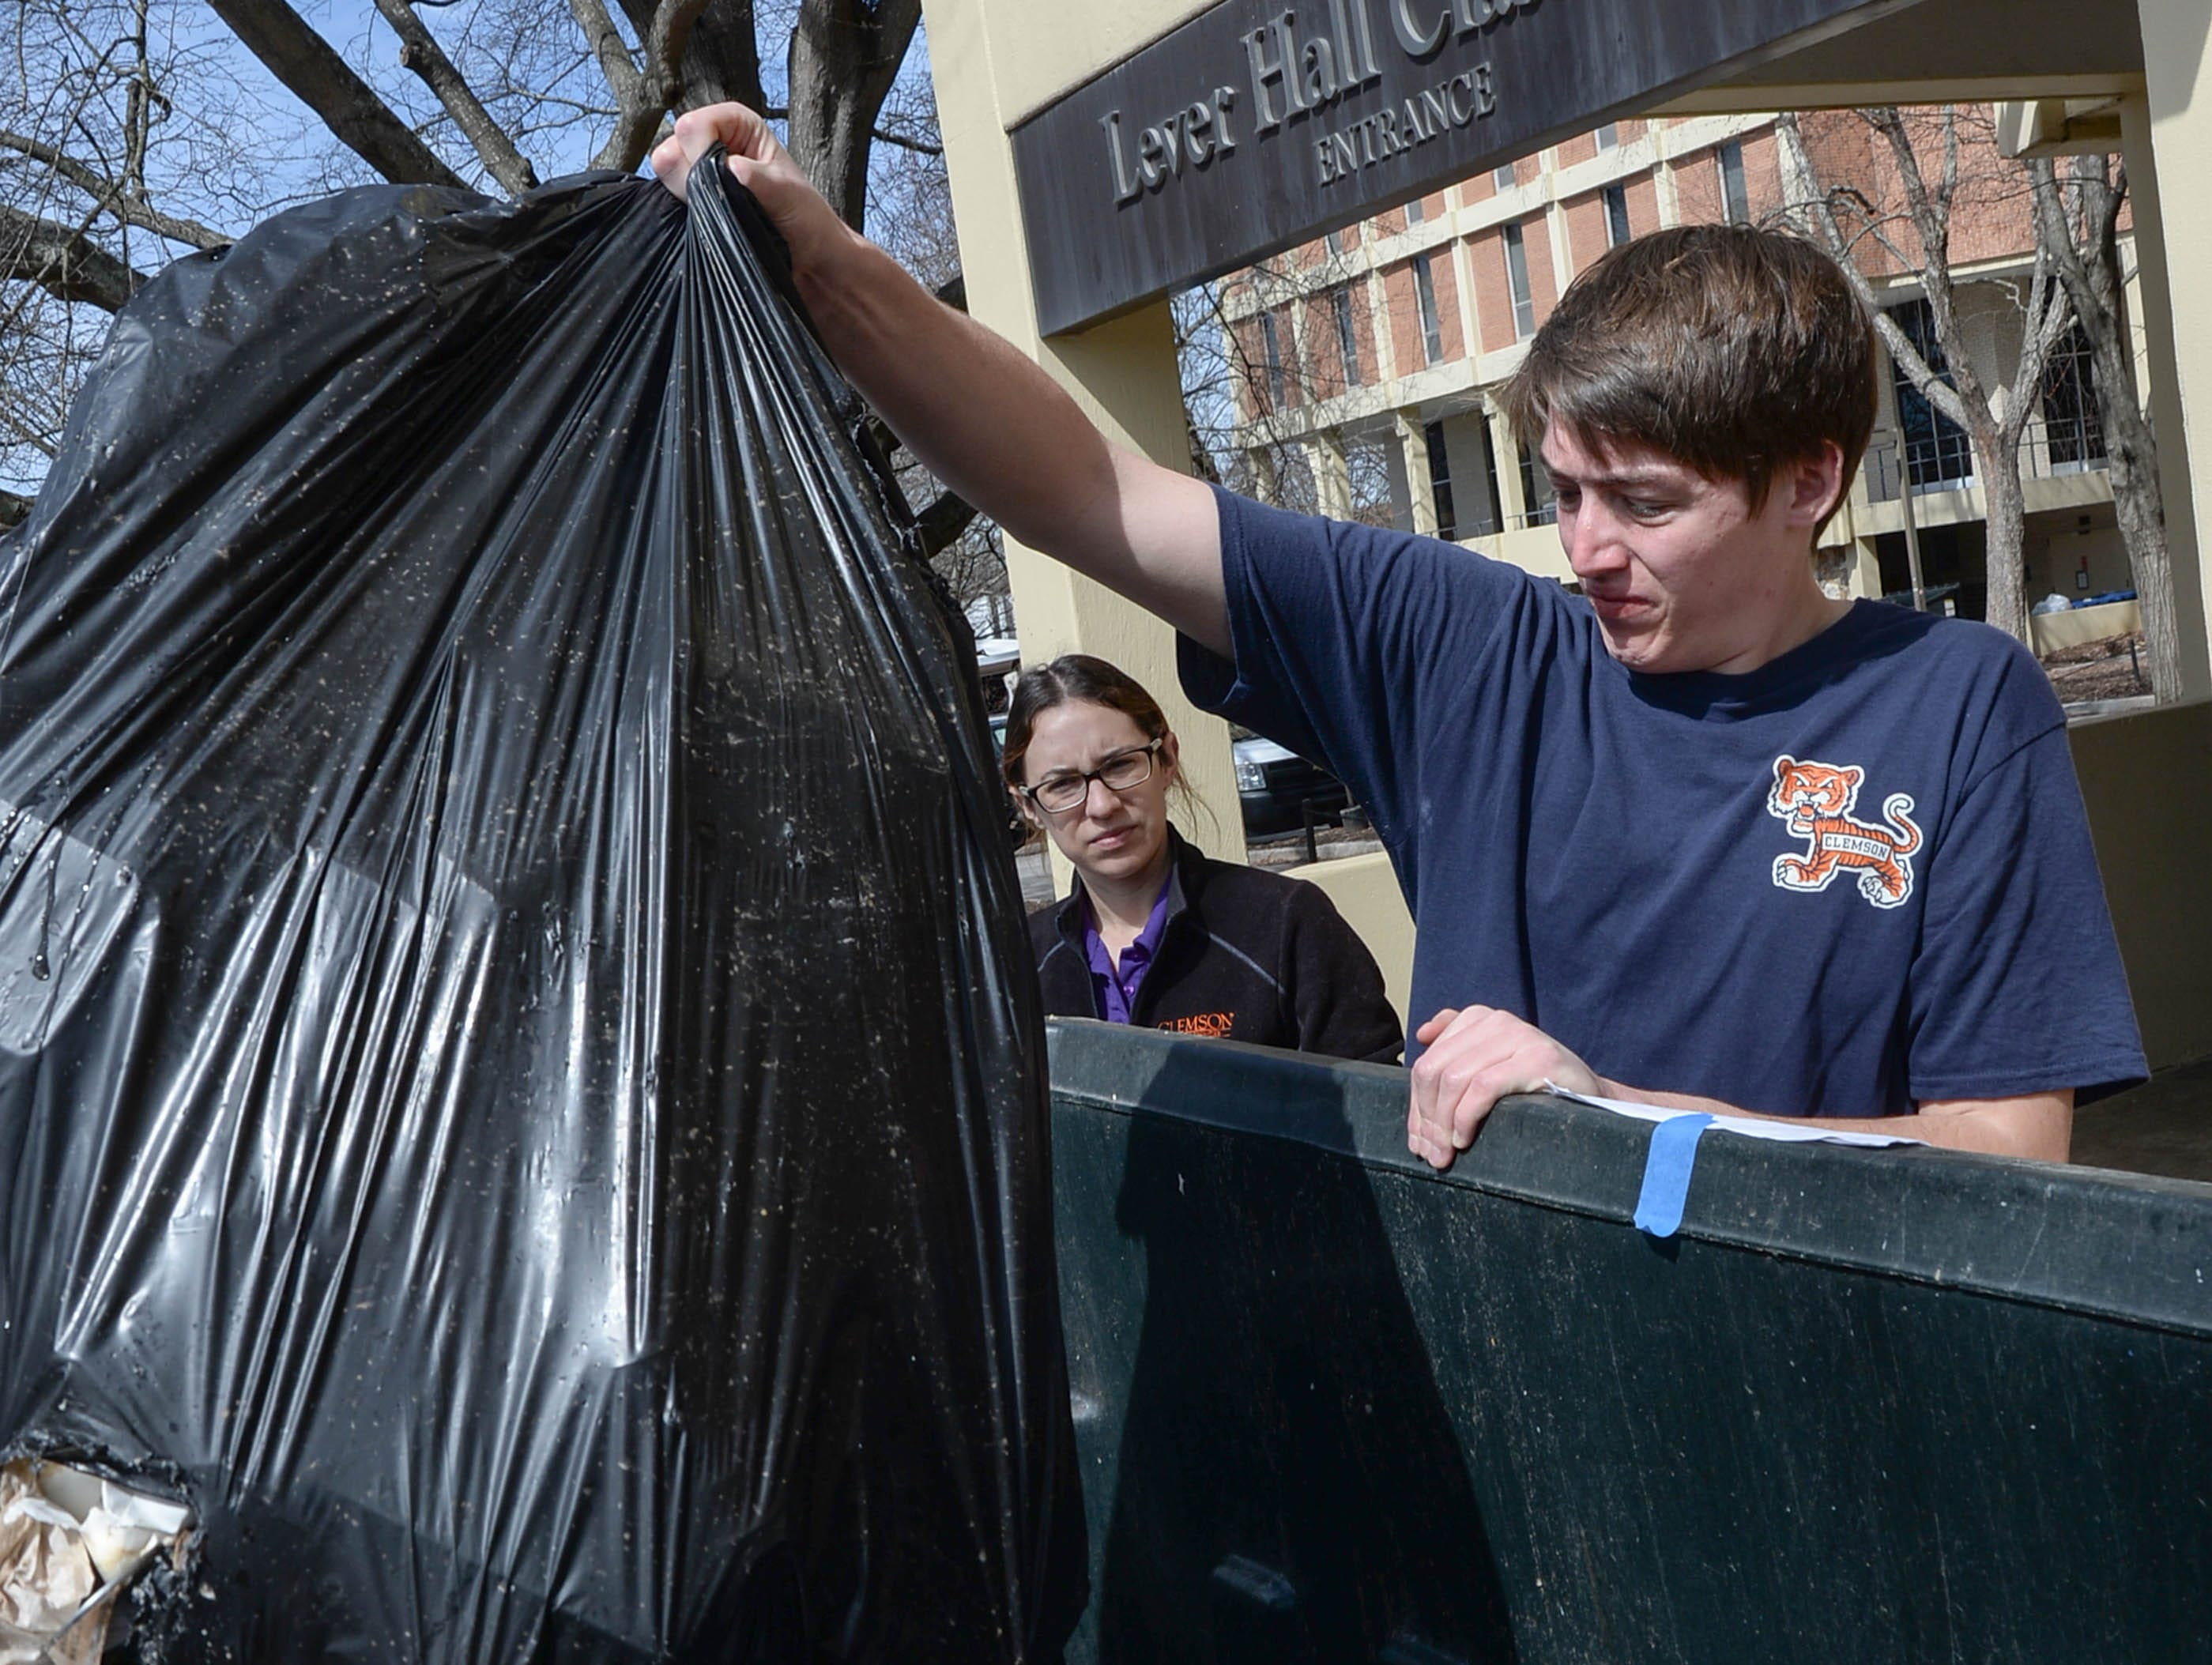 Clemson University student Caleb Todd, right, and Brittany Morra, left, collect trash during a study of student recycle habits. The waste audit, part of the annual RecycleMania competition with Universities across the country found from a sample study that Clemson students who recycle plastic and cans are good at doing so, said Brittany Morra, leading the March 12 study between Manning and Byrnes Hall tower dormitories.